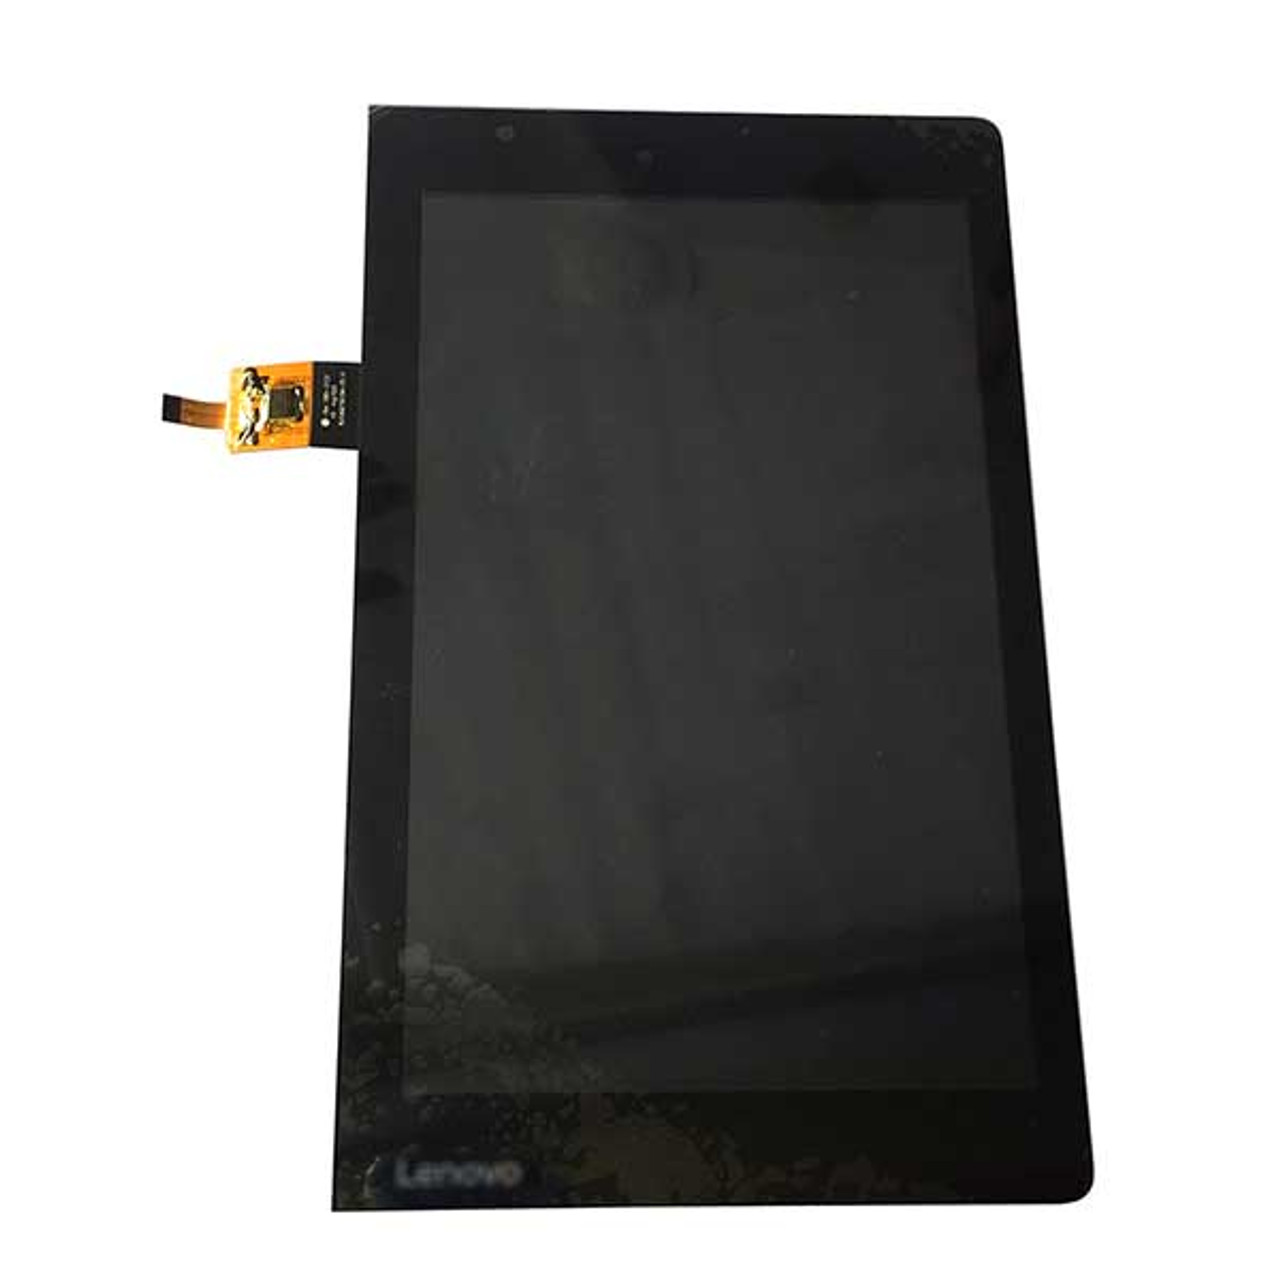 White A1474, A1475 GV+ Performance Group Vertical Replacement Touch Screen Digitizer Glass Display with Home Button Flex Cable Assembly Compatible with Apple iPad Air